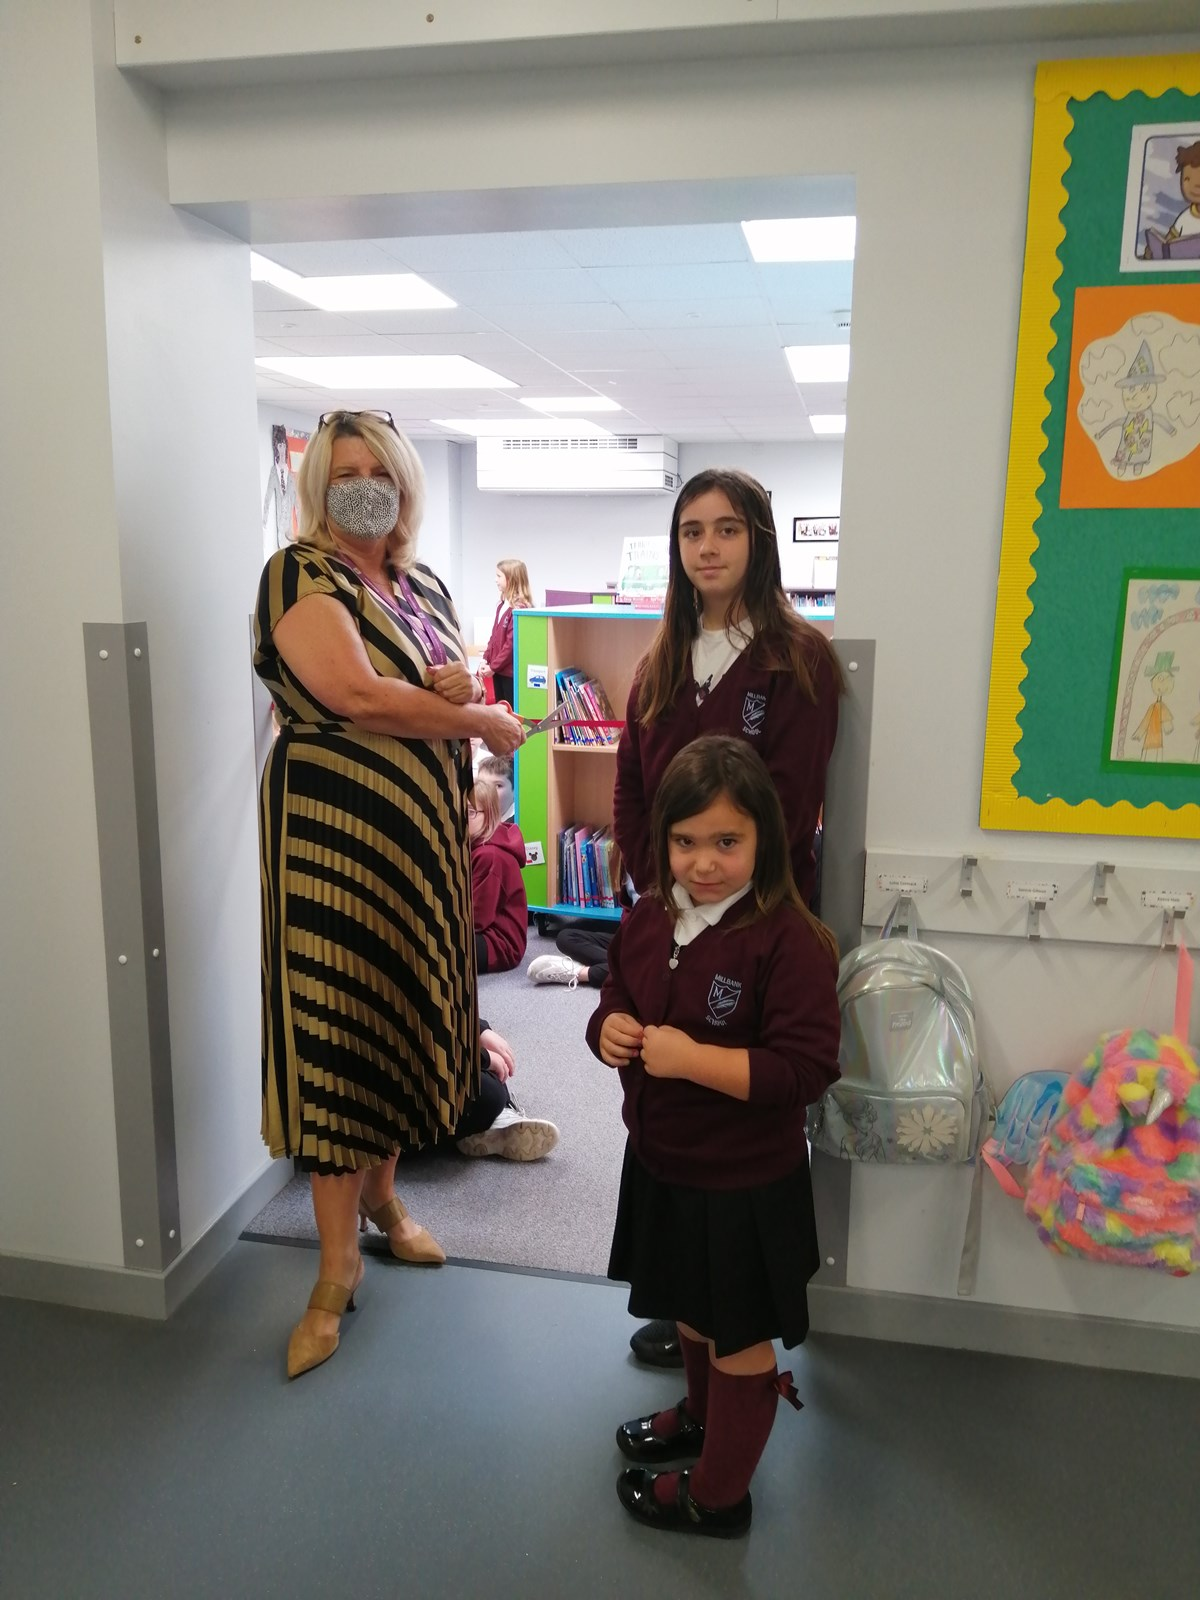 Opening of new Millbank Primary School library: Chief Education Officer, Vivienne Cross, with Lucie Scott (11) and Zuri Andrew (5), Millbank's youngest and oldest pupils.